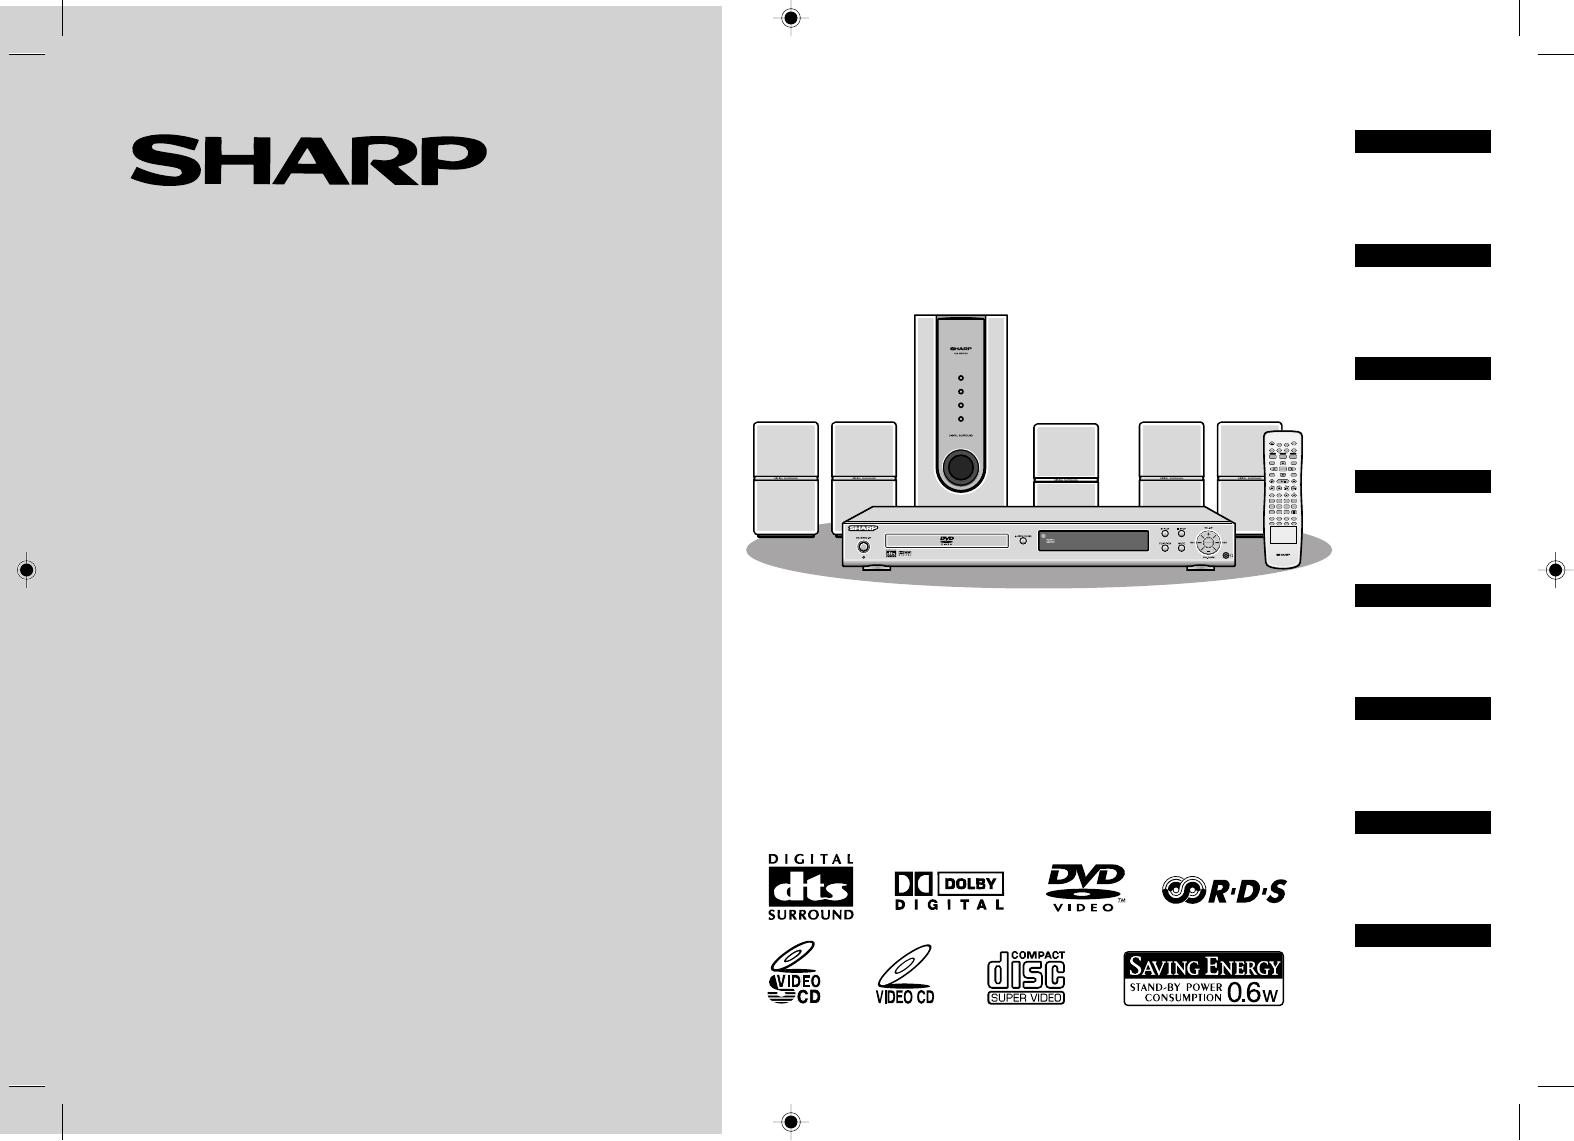 Sharp Home Theater System Ht